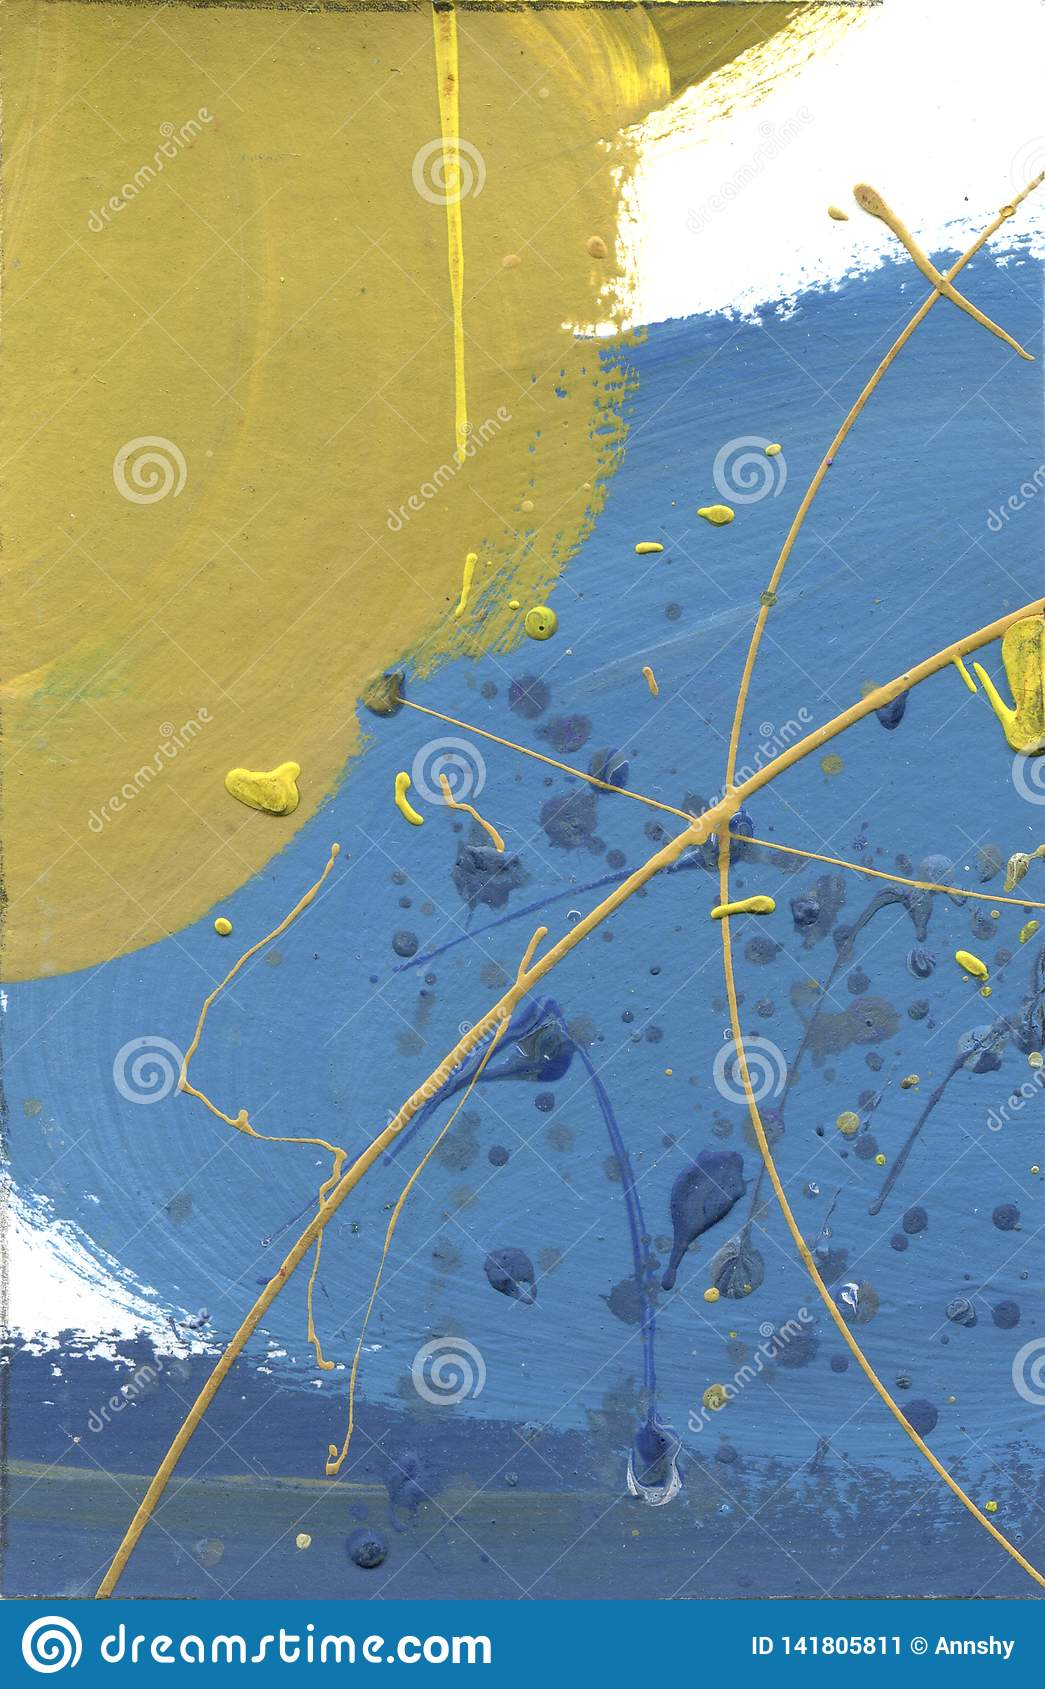 Watercolor abstract pained canvas. Desert effect acrylic splashes hand made paint yellow and blue lines texture. Blue gradient